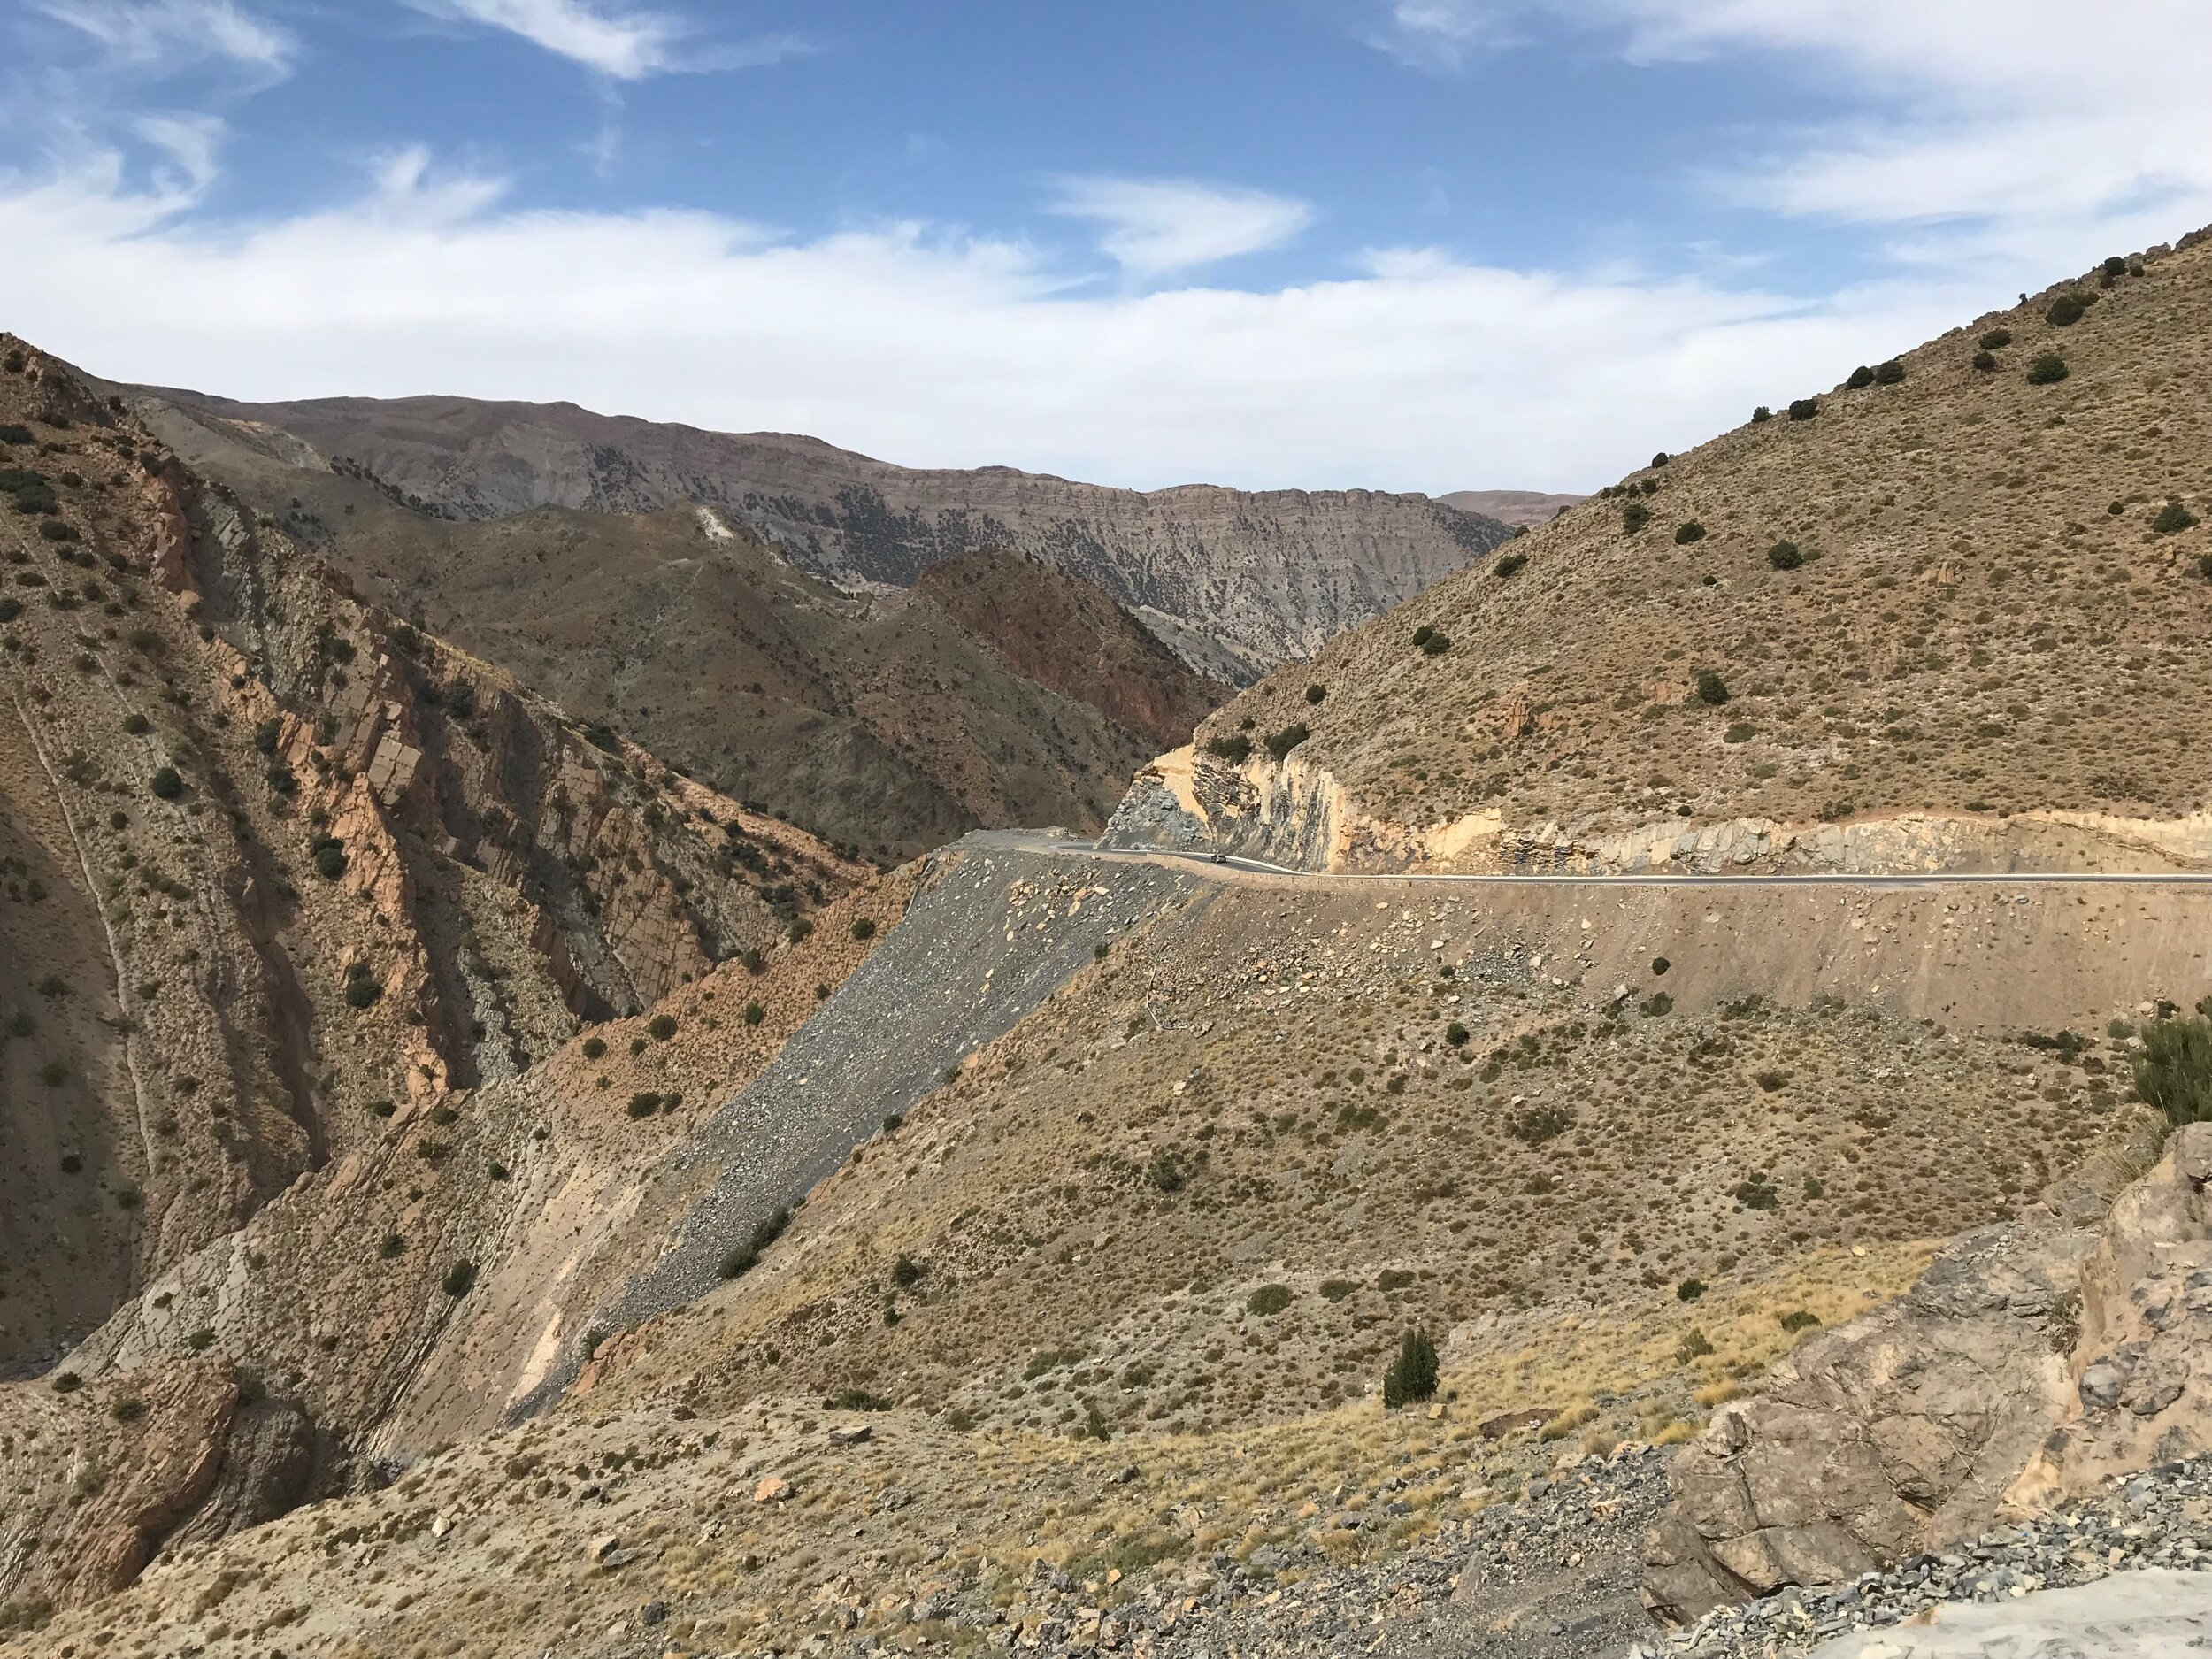 Amazing views today in the High Atlas